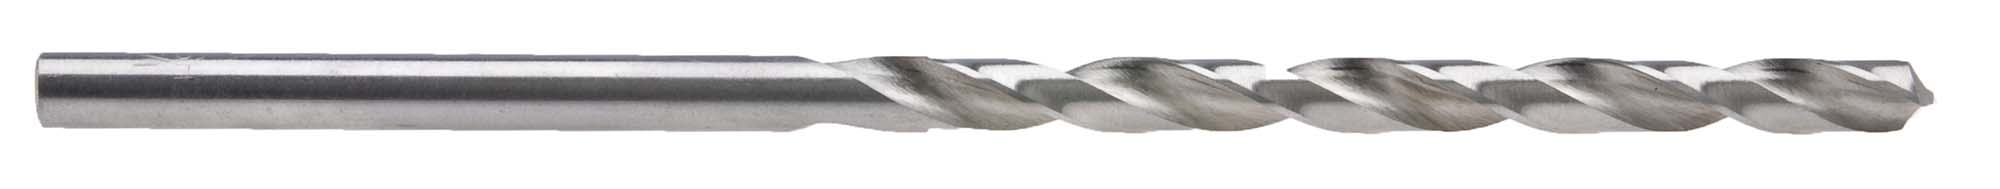 "H (.266"") ""Taper Length"" Long Straight Shank Drill Bit, High Speed Steel"